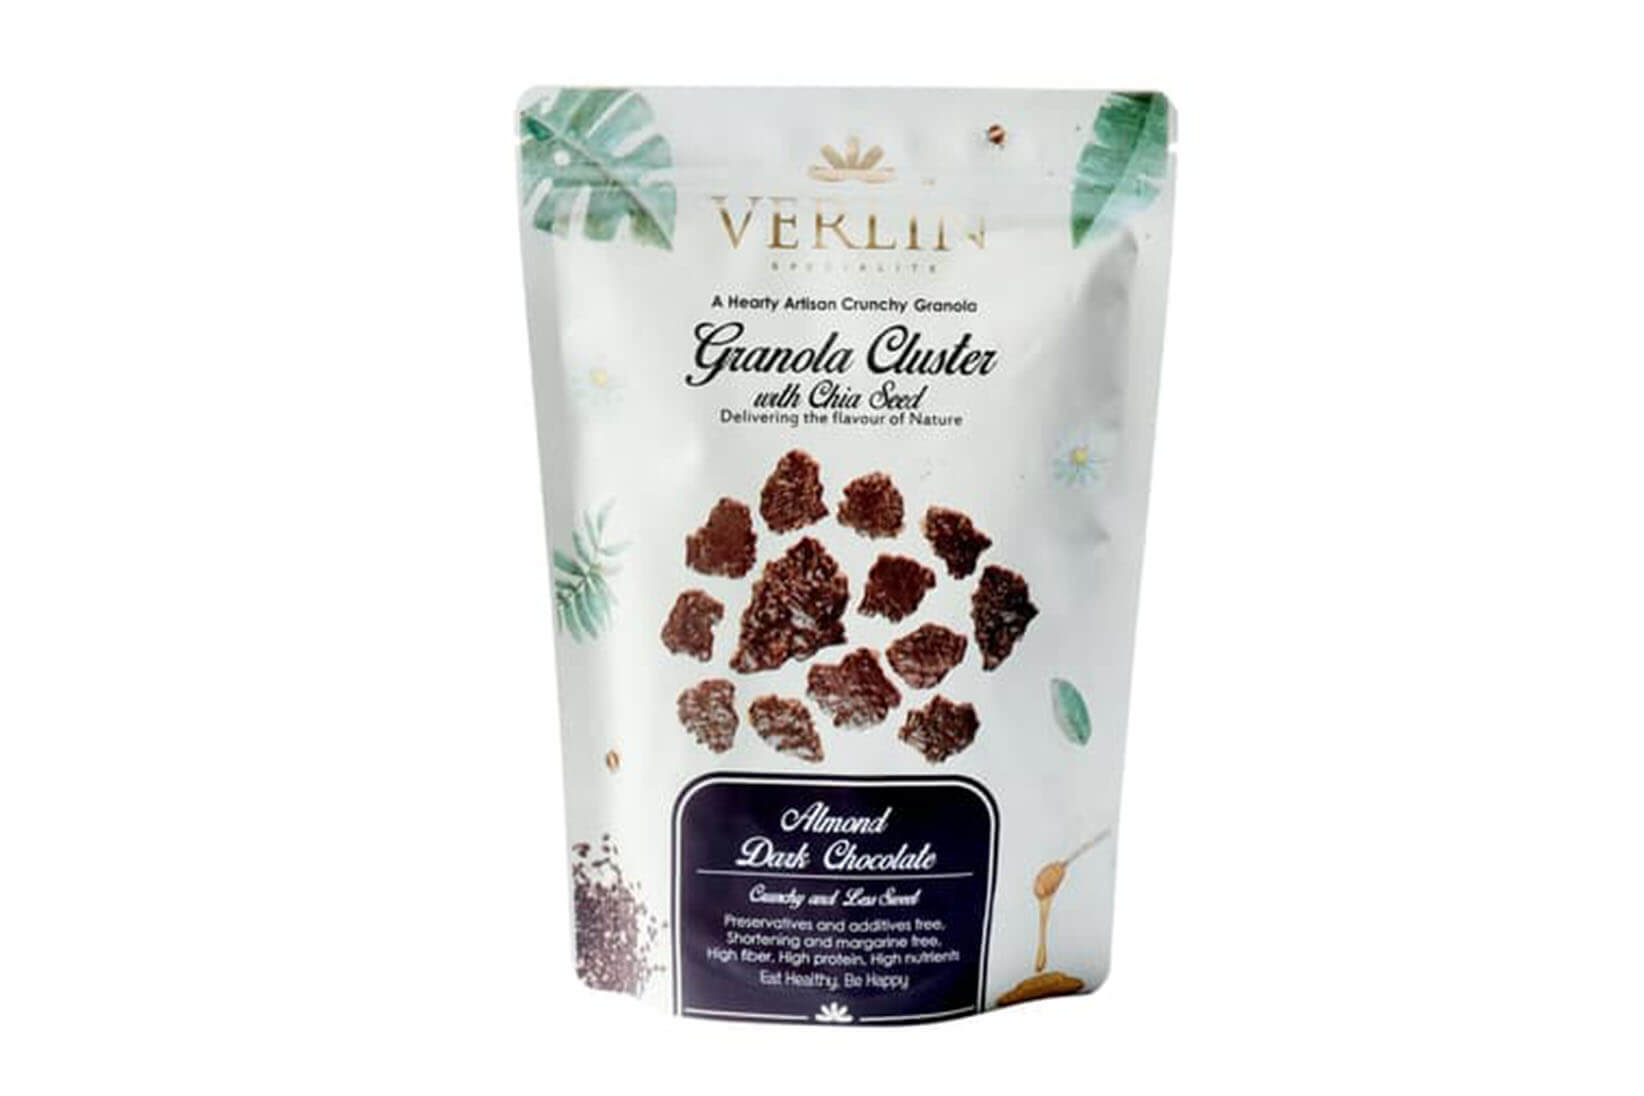 Granola Cluster Almond Dark Chocolate Verlin